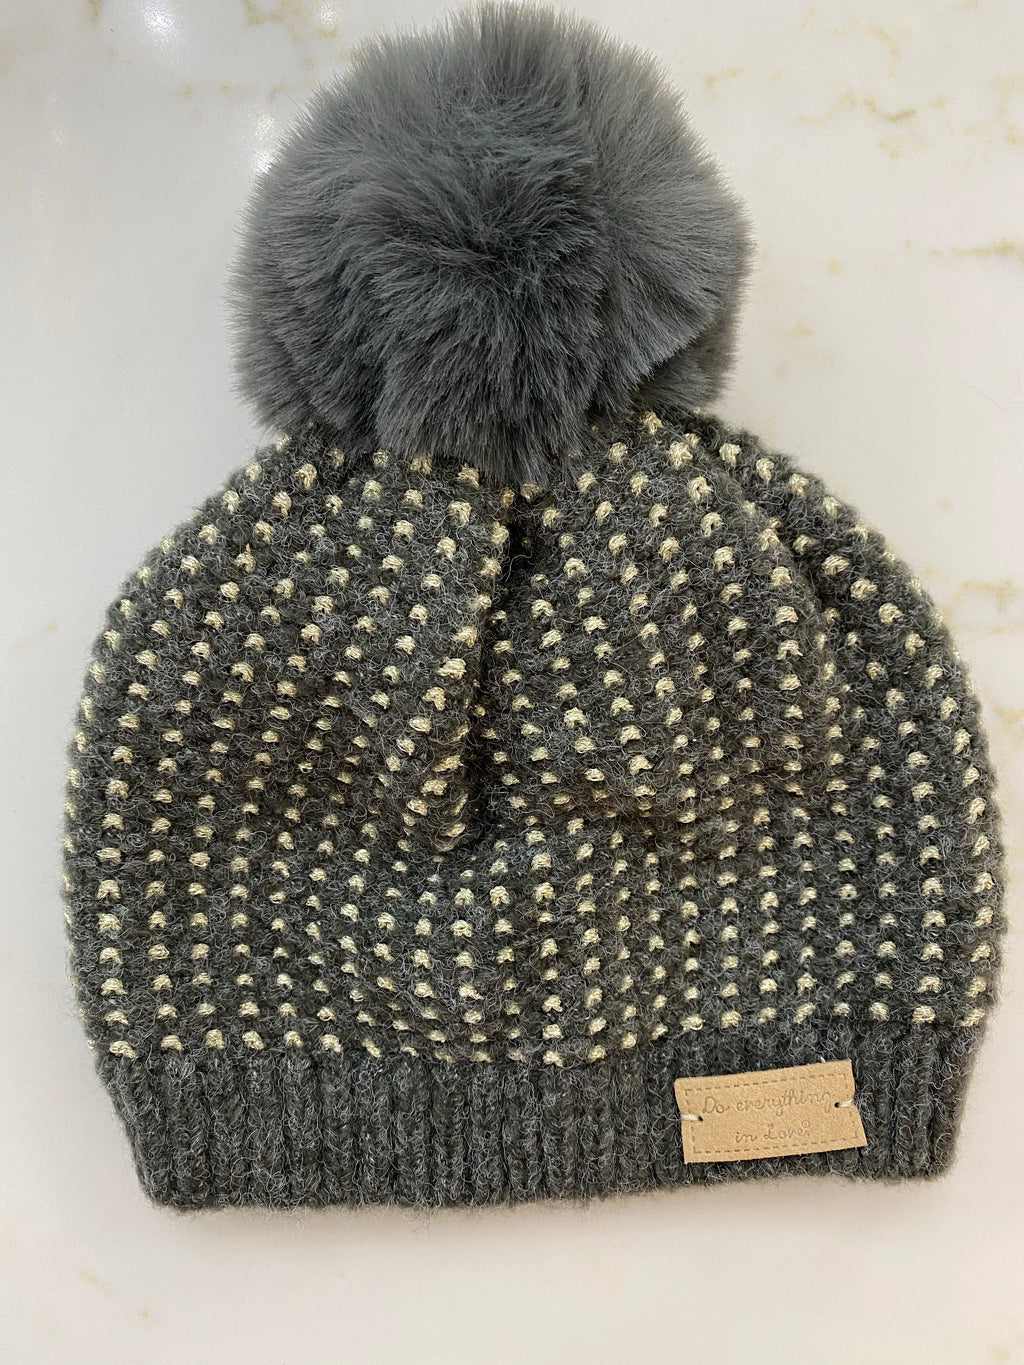 Knit Beanie With Glitter Thread Detail